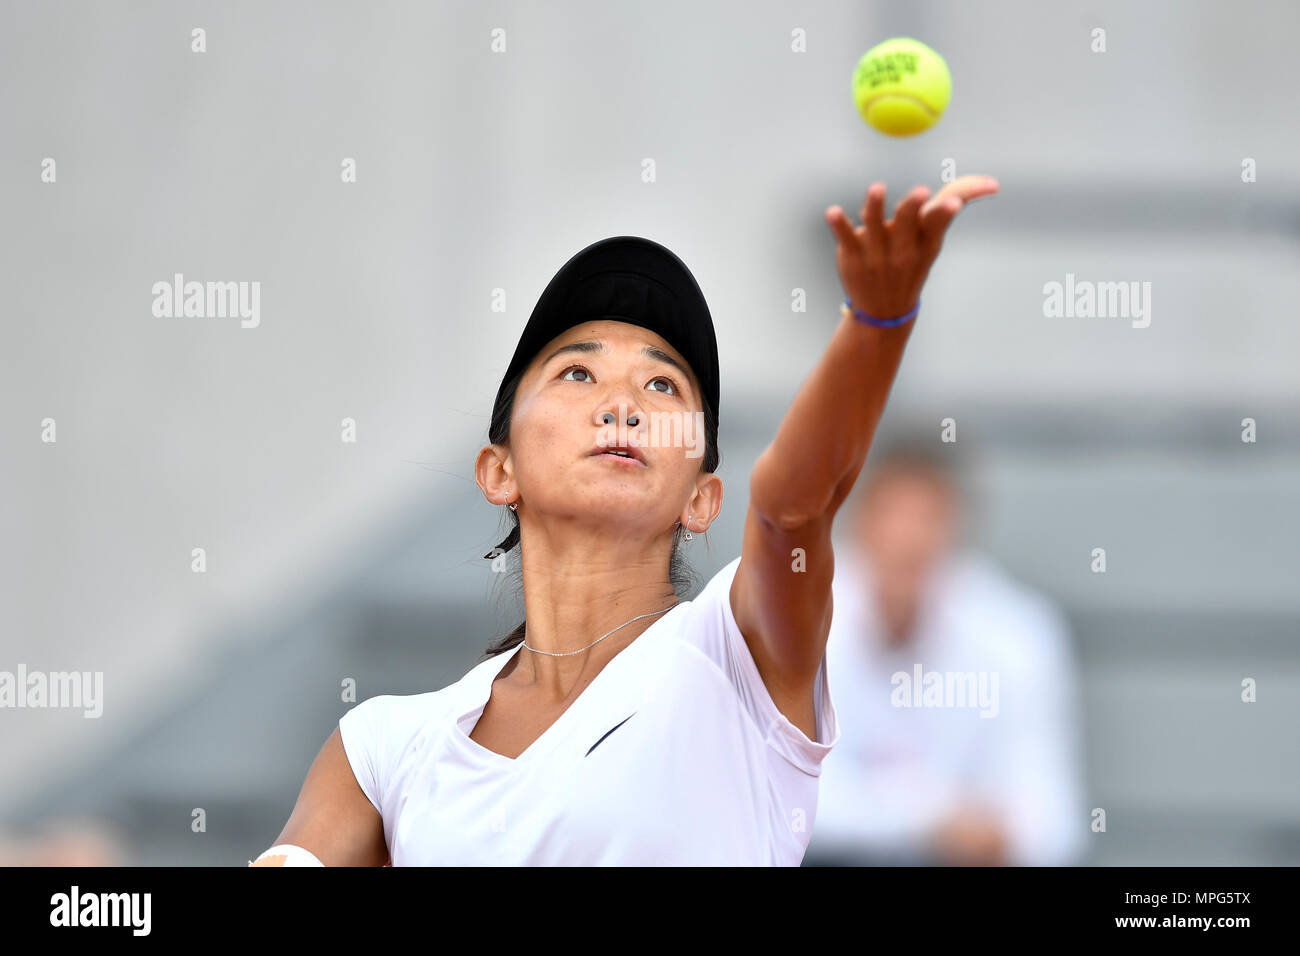 Paris, France. 23rd May, 2018. Lu Jiajing of China serves to Margot Yerolymos of France during the women's singles Qualification 1st round match of French Open in Paris, France on May 23, 2018. Lu lost 0-2. Credit: Chen Yichen/Xinhua/Alamy Live News Stock Photo